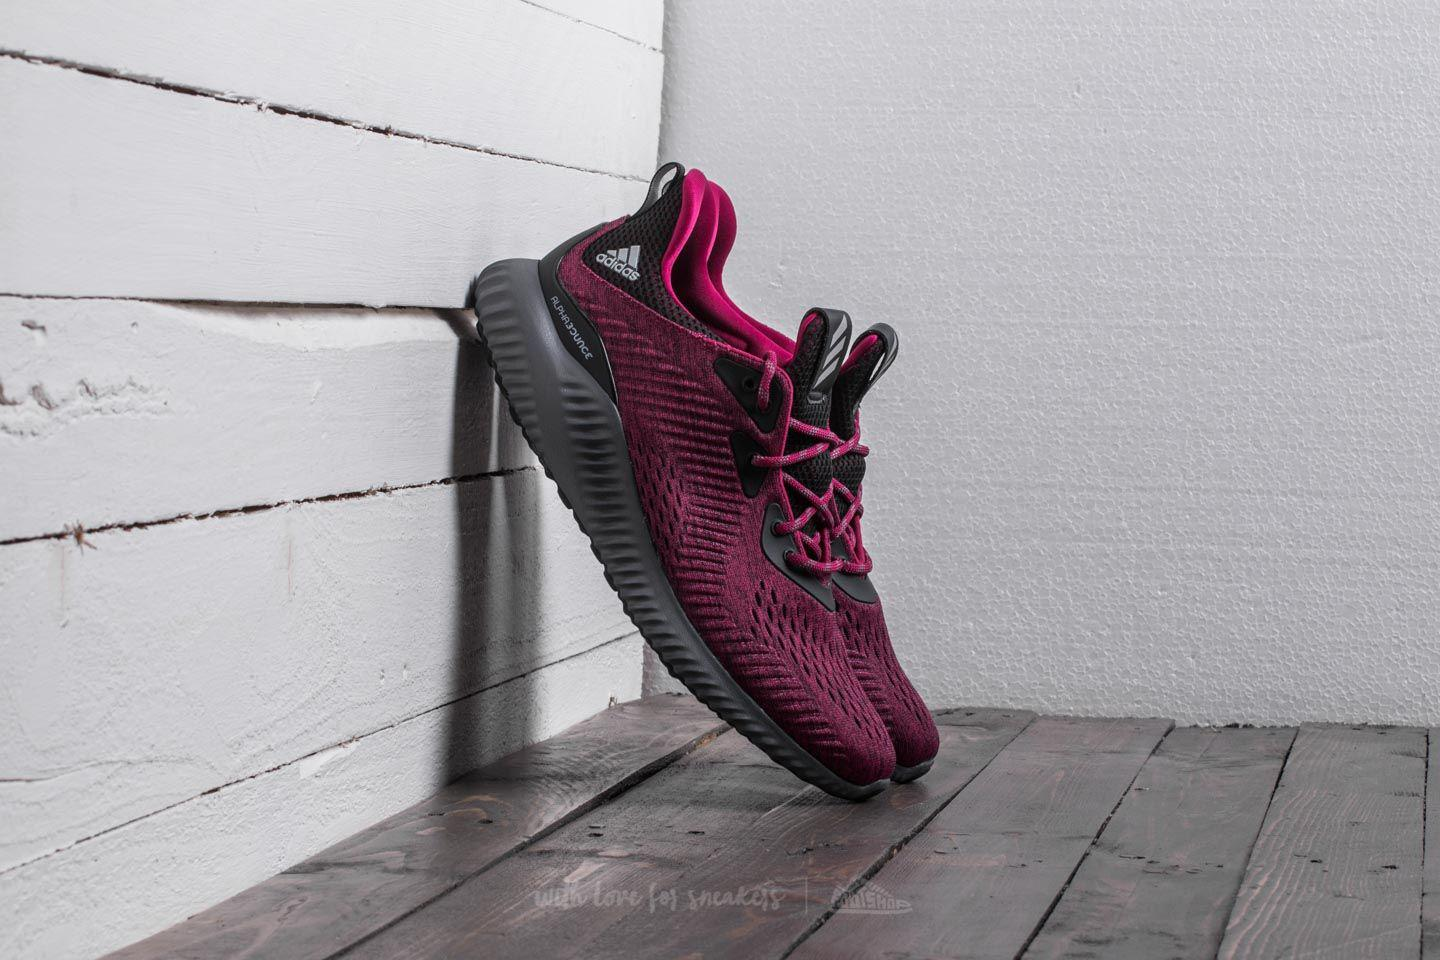 outlet store 8b12b 80af3 Lyst - Footshop Adidas Alphabounce Em Mystery Ruby Core Blac